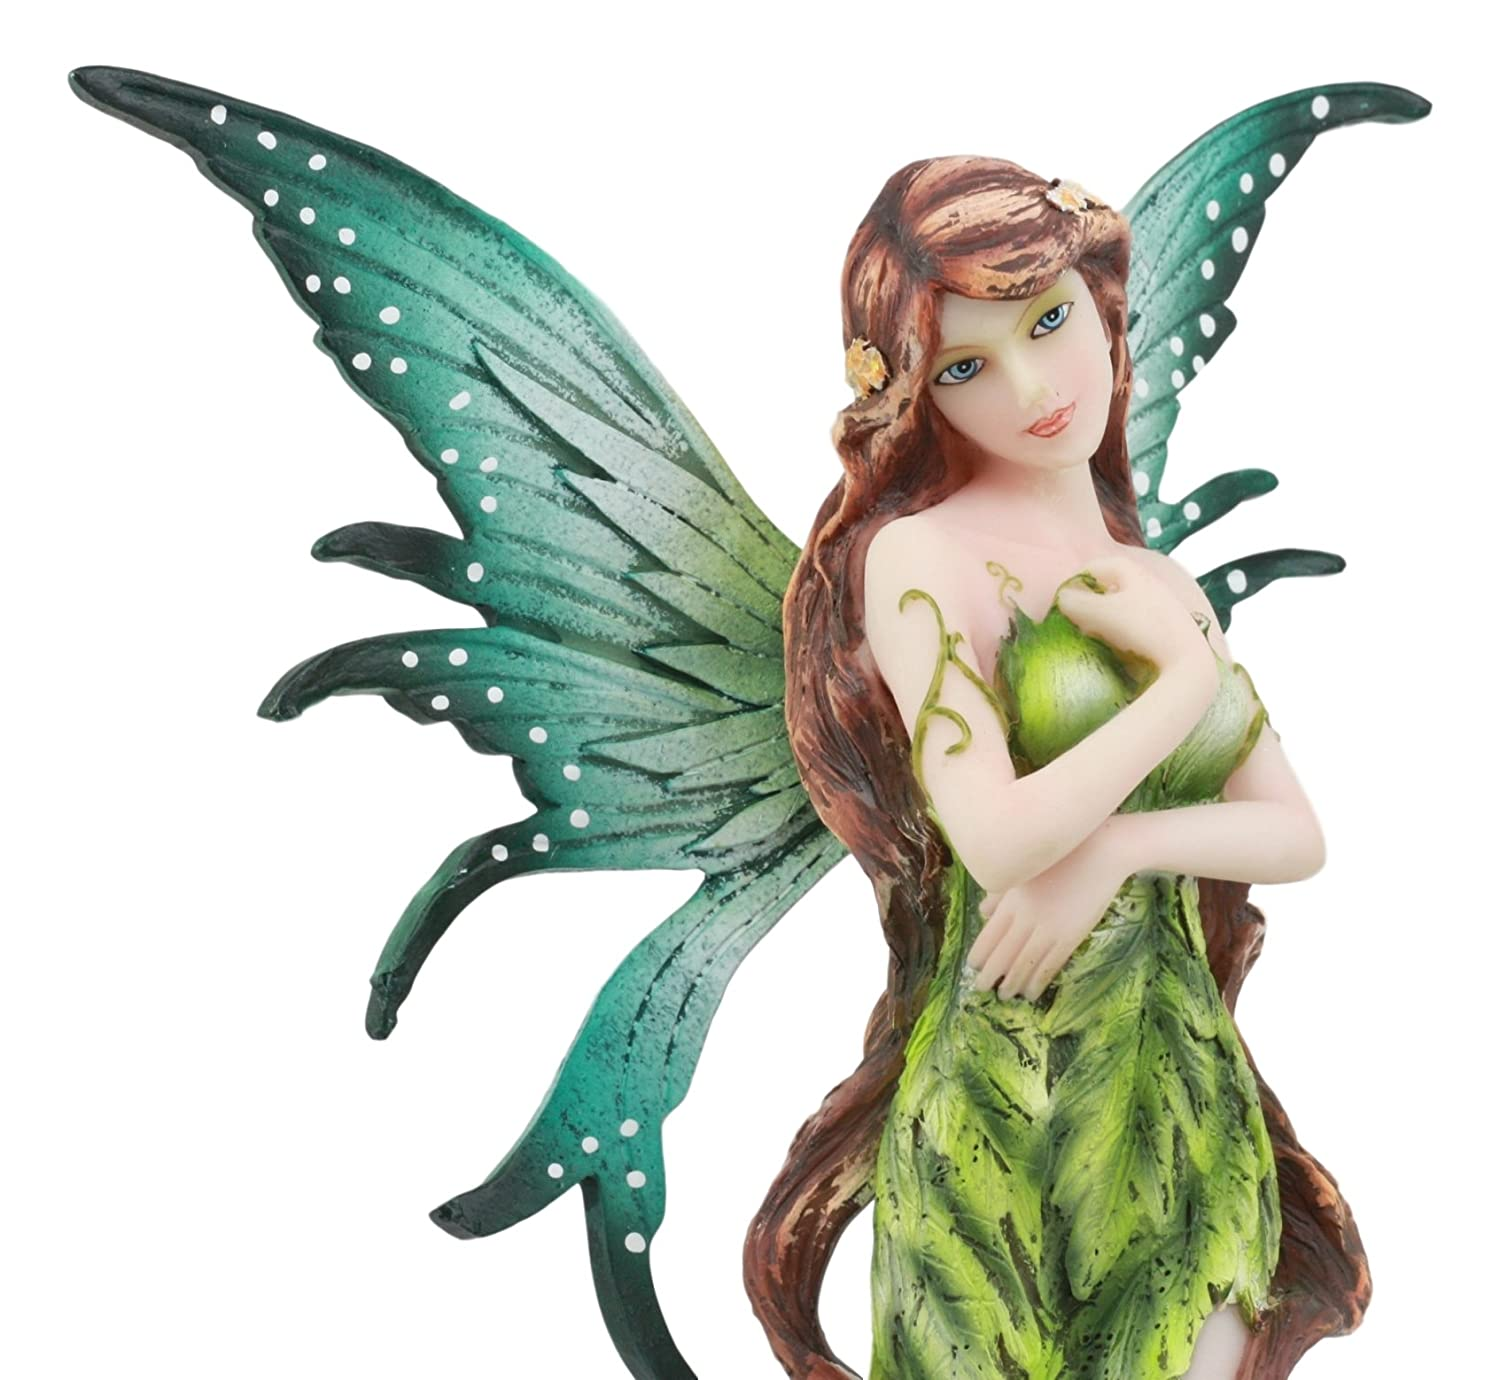 Ebros Mother Earth Gaia Forest Fairy Statue 11 Tall Enchanted Pixie Fae Green Fairy With Root Legs Fantasy Sculpture